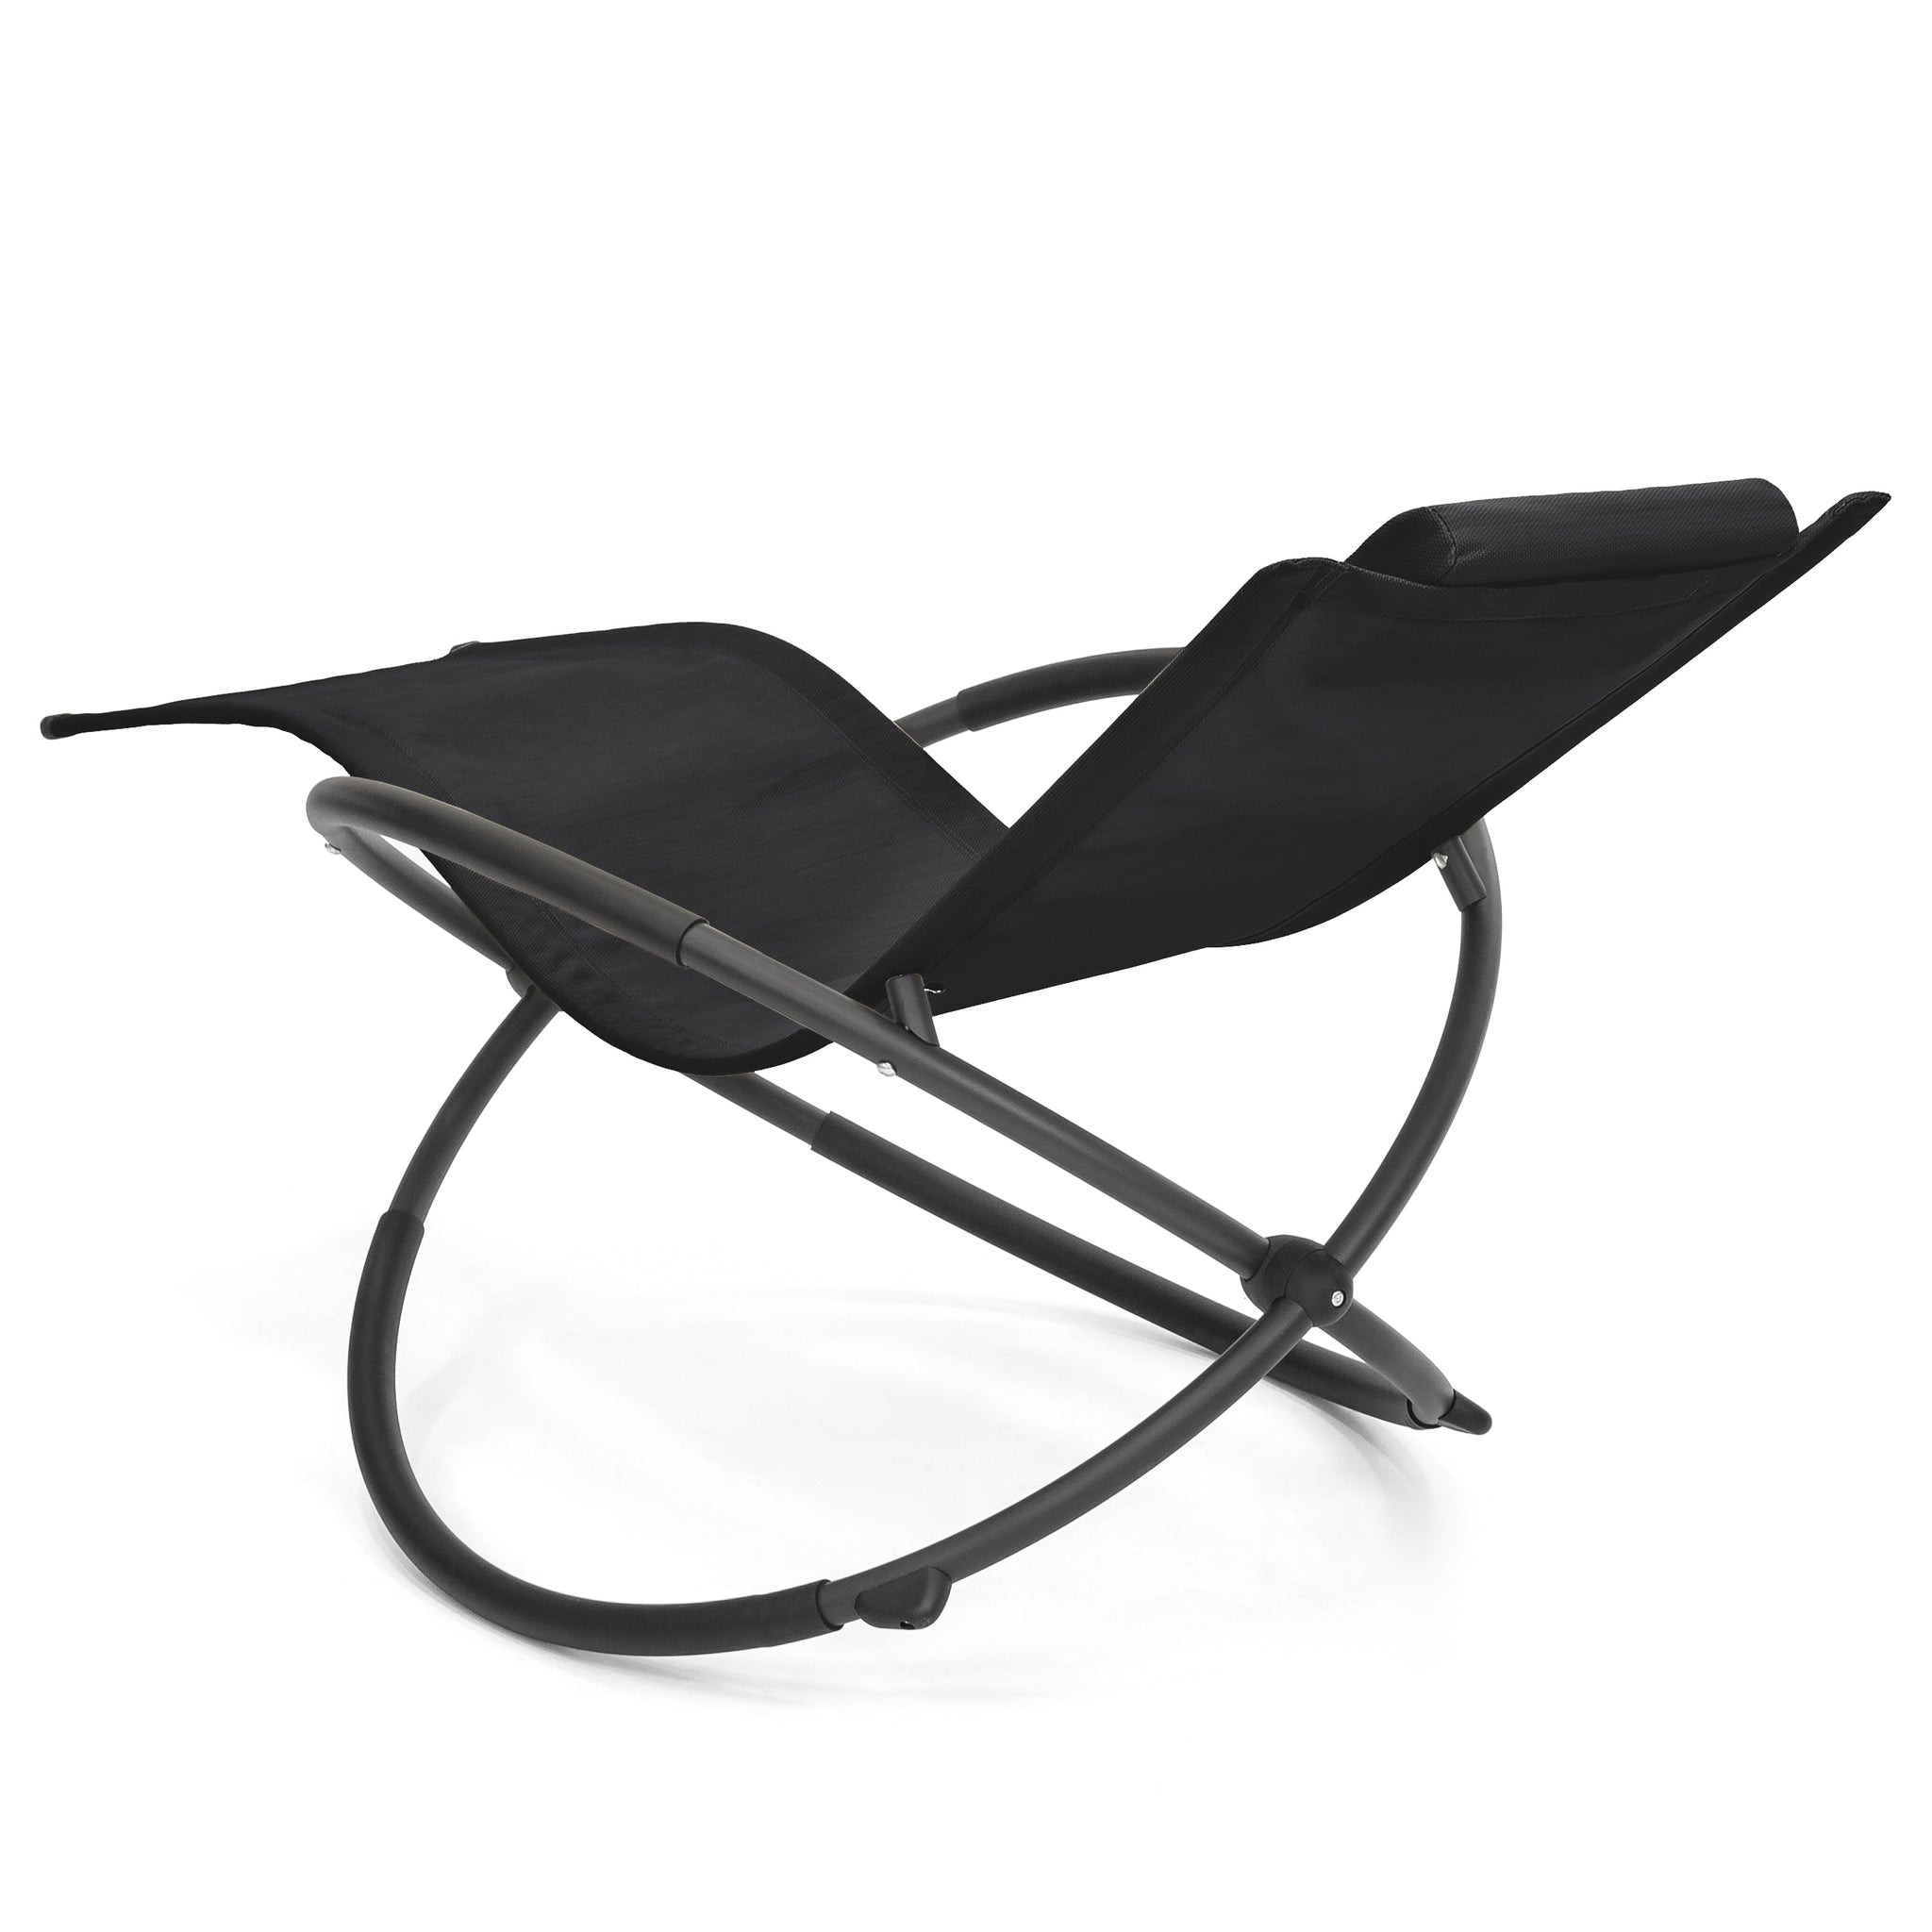 Folding Zero Gravity Chair w Removable Pillow Black – Best